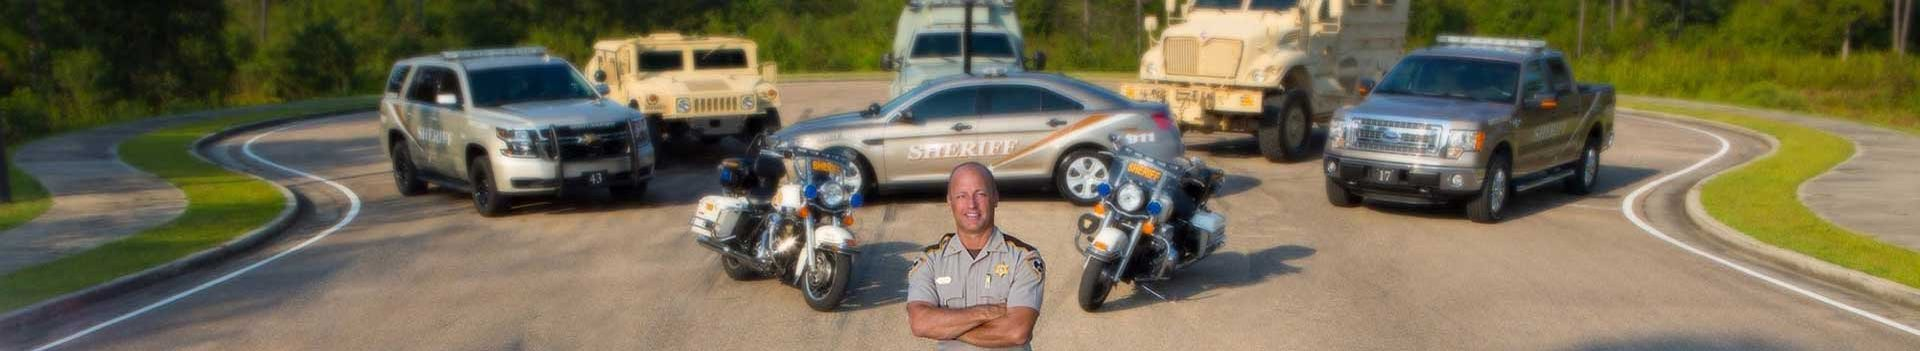 Jones County Sheriff MS